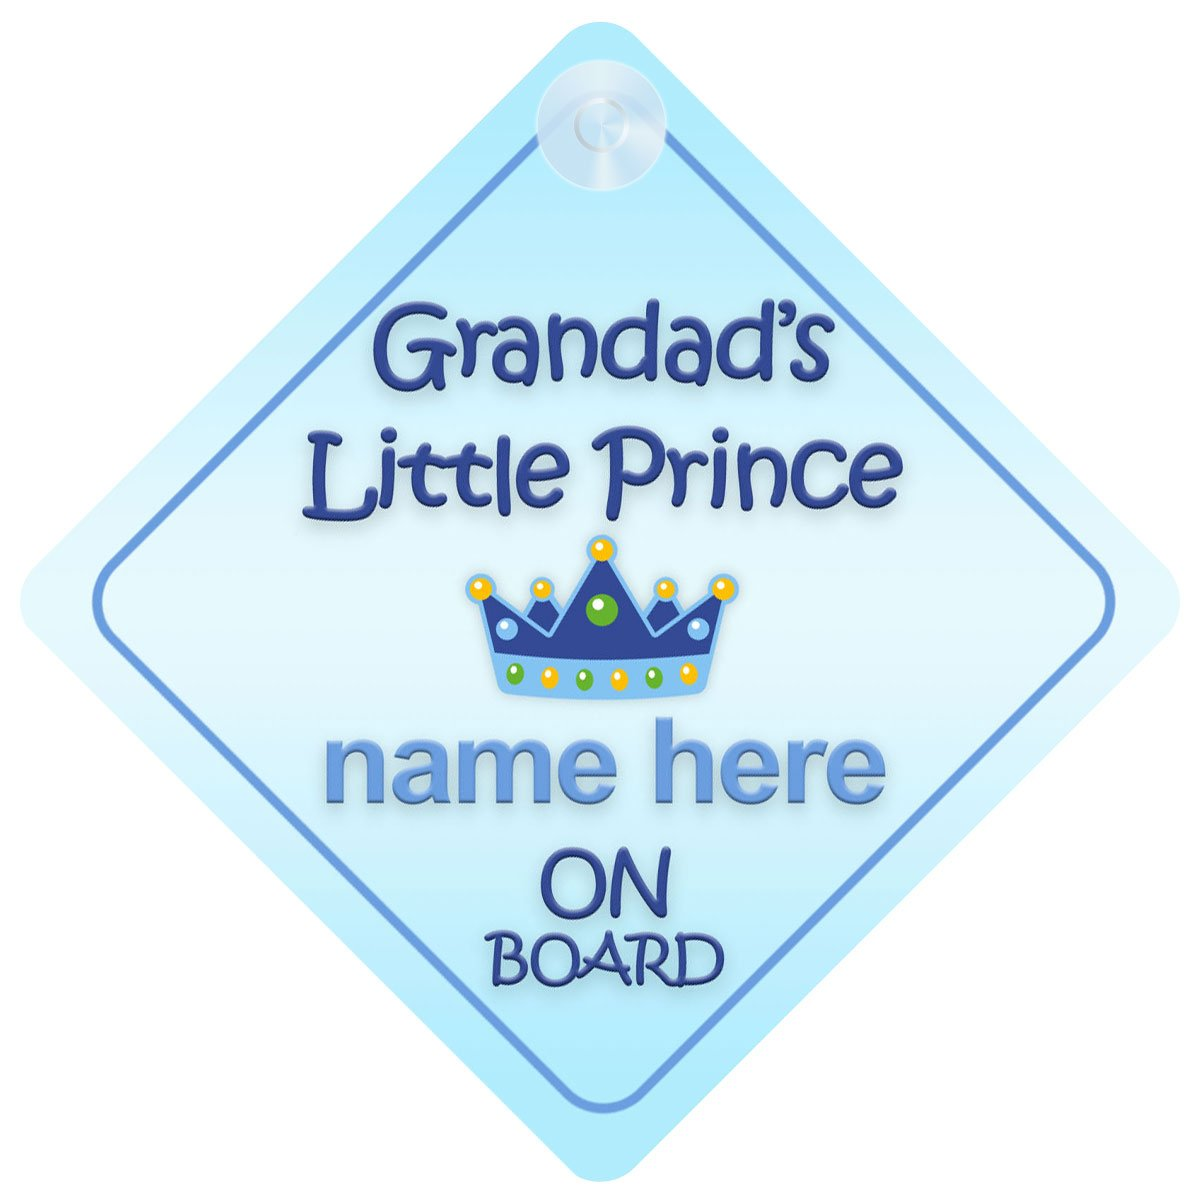 Grandad's Little Prince On Board Car Sign New Baby / Child Gift / Present Quality Goods Ltd